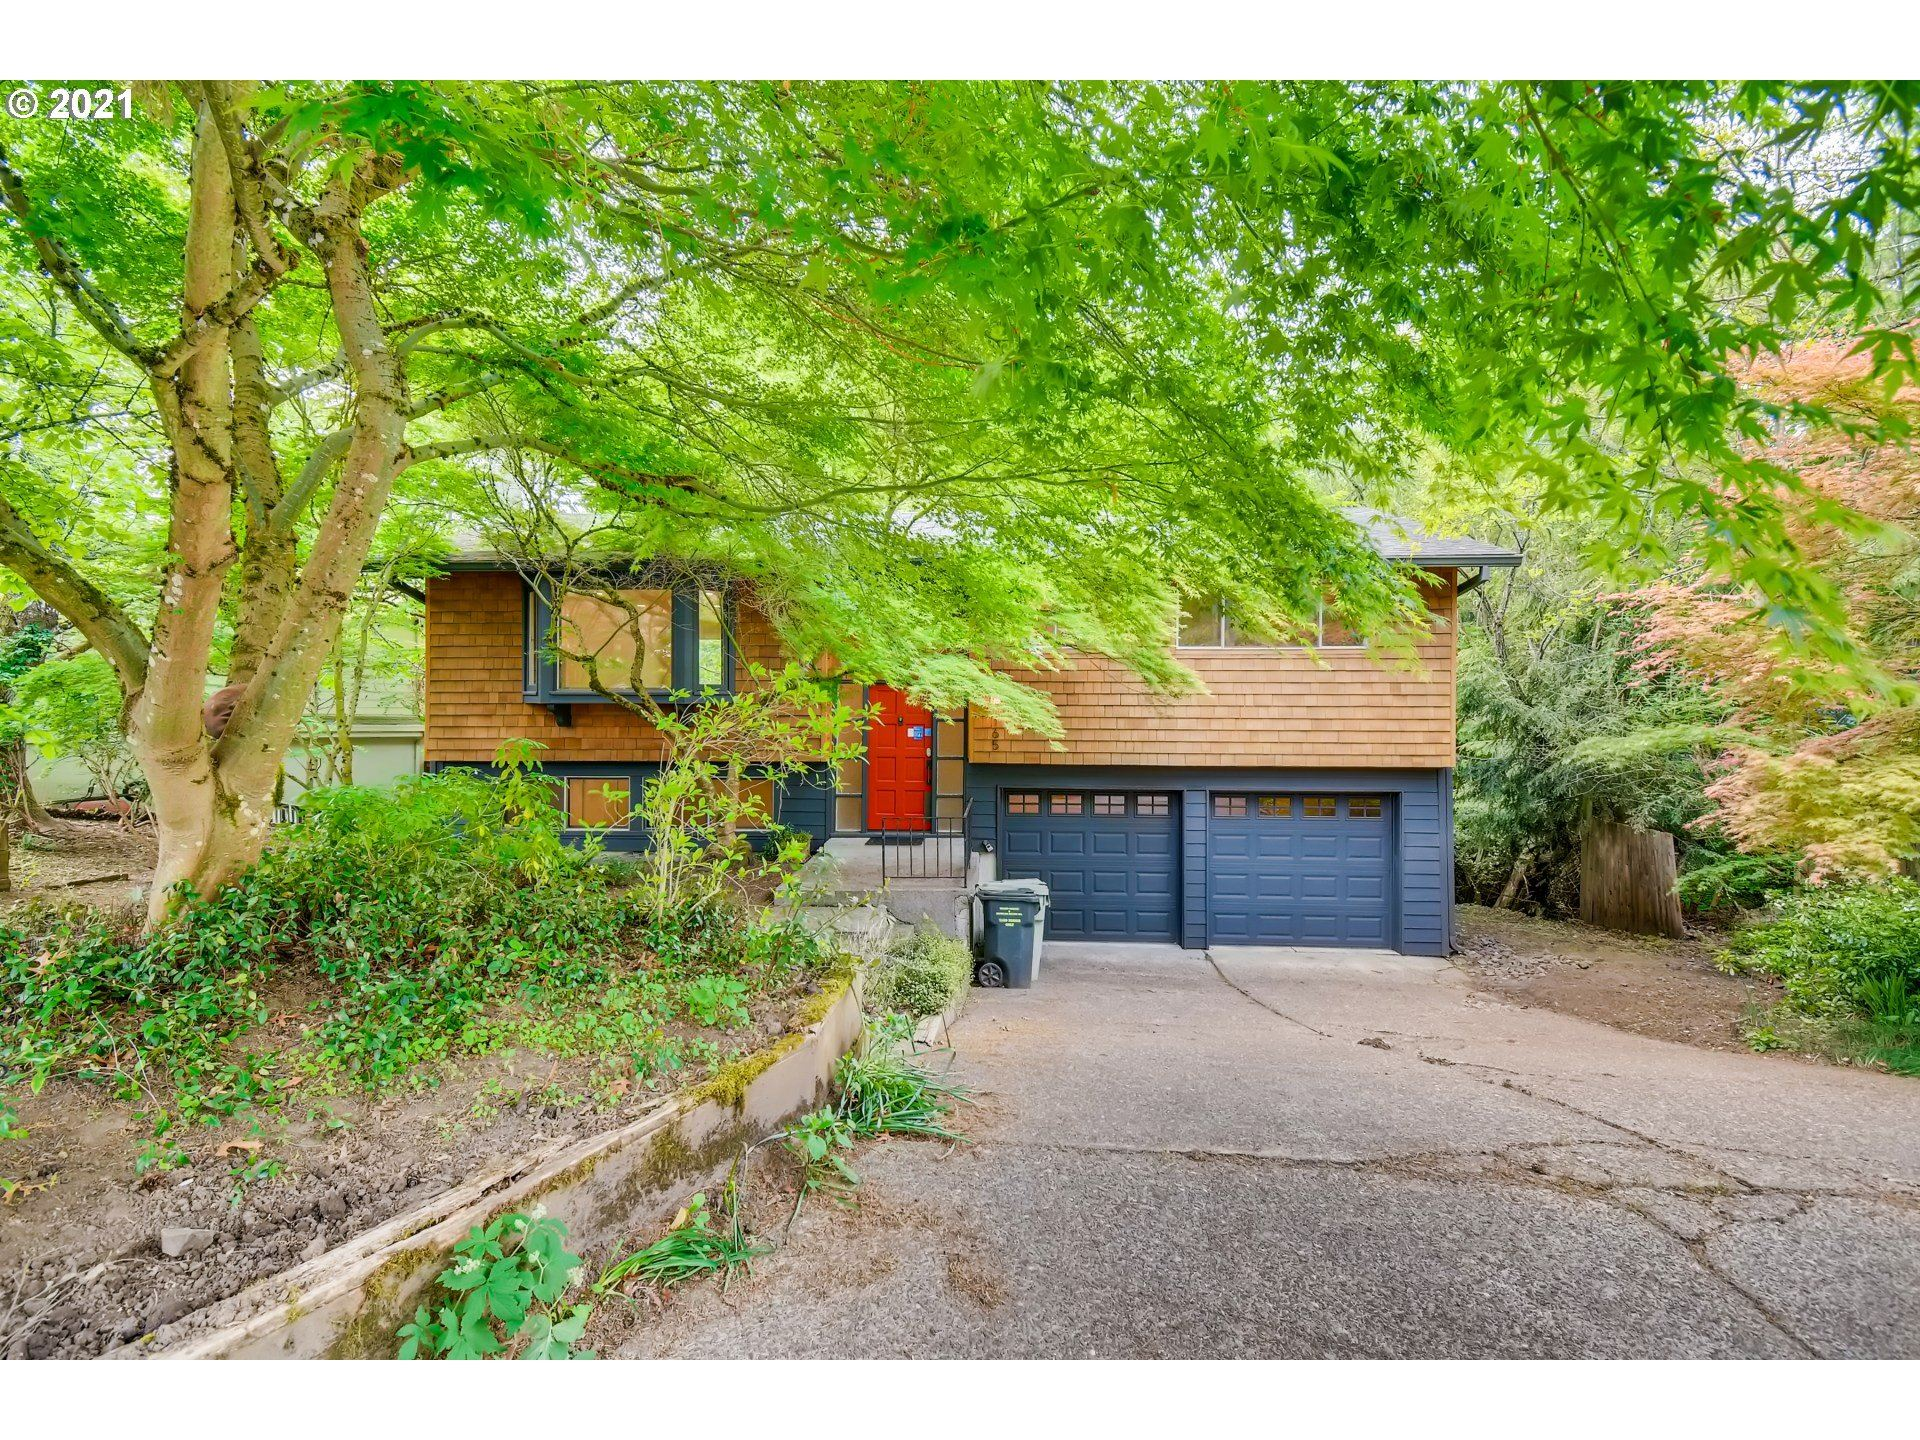 165 SW 97TH AVE, Portland, OR 97225 - MLS#: 21050924